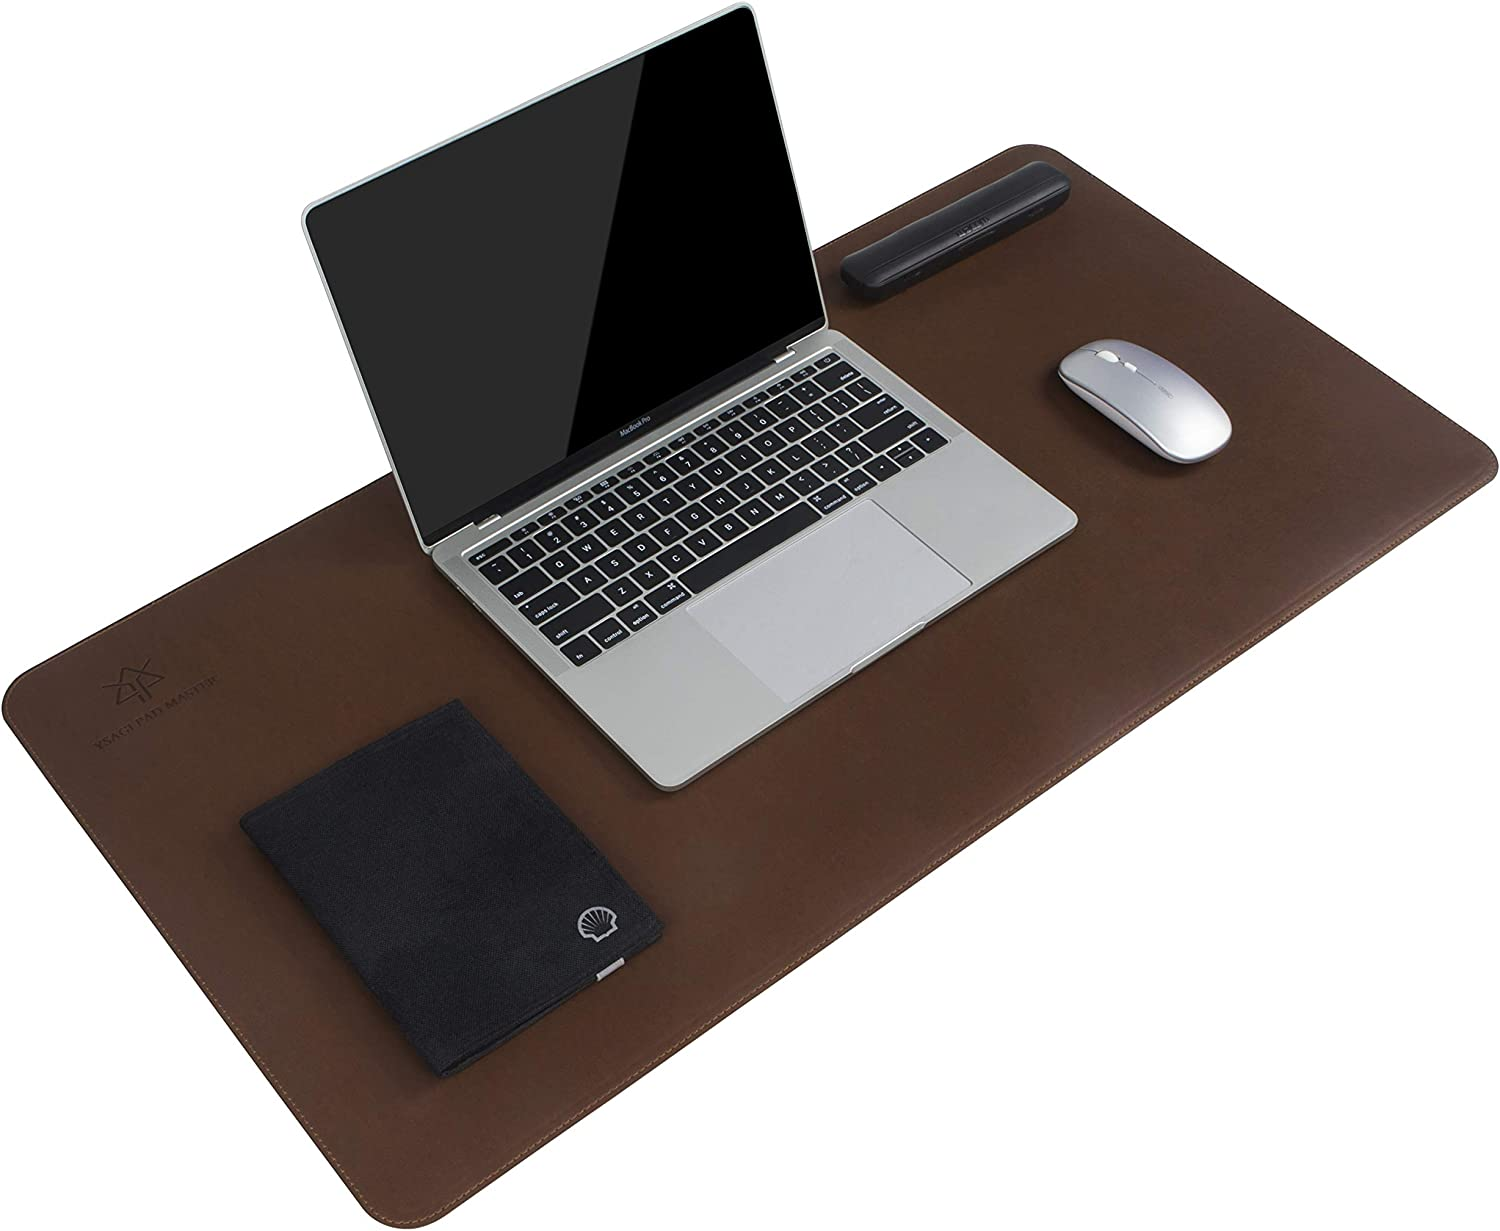 YSAGi Leather Desk Pad, Ultra Thin Writing Desk Mat Desk Protector Accessories, Large Mouse Pad for Office/Home Use (31.5